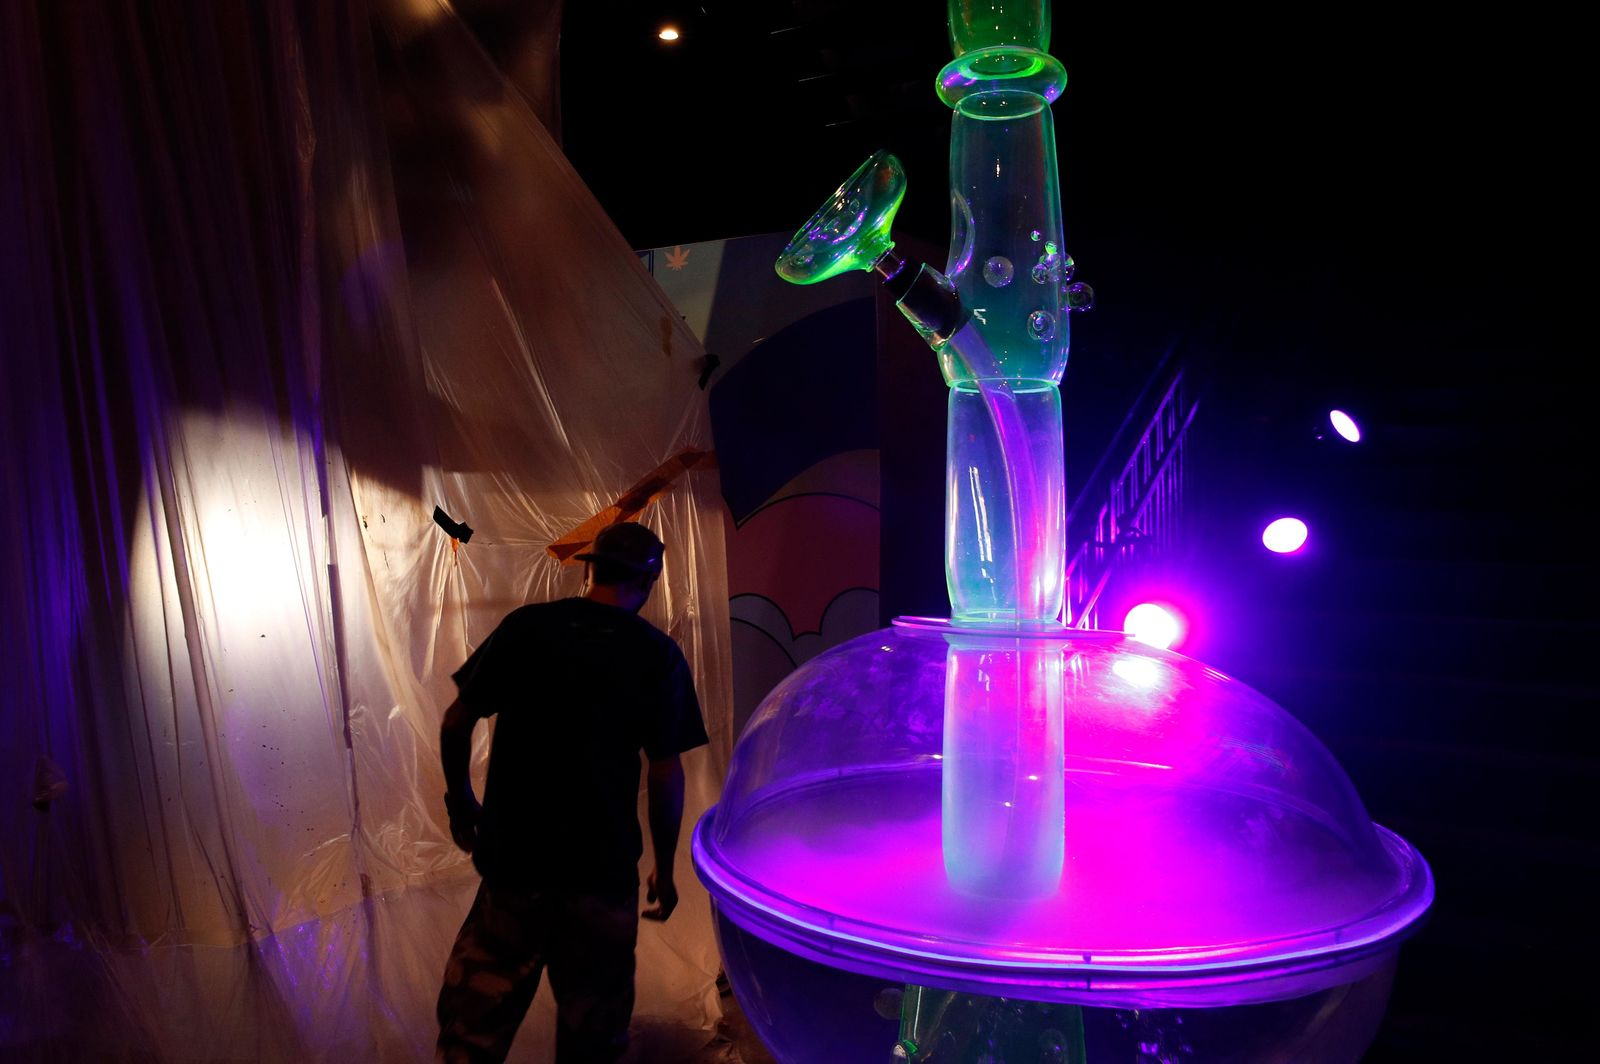 In this Tuesday, Sept. 18, 2018 photo, a man walks by a 24-foot-tall bong at the Cannabition cannabis museum in Las Vegas. (AP Photo/John Locher)